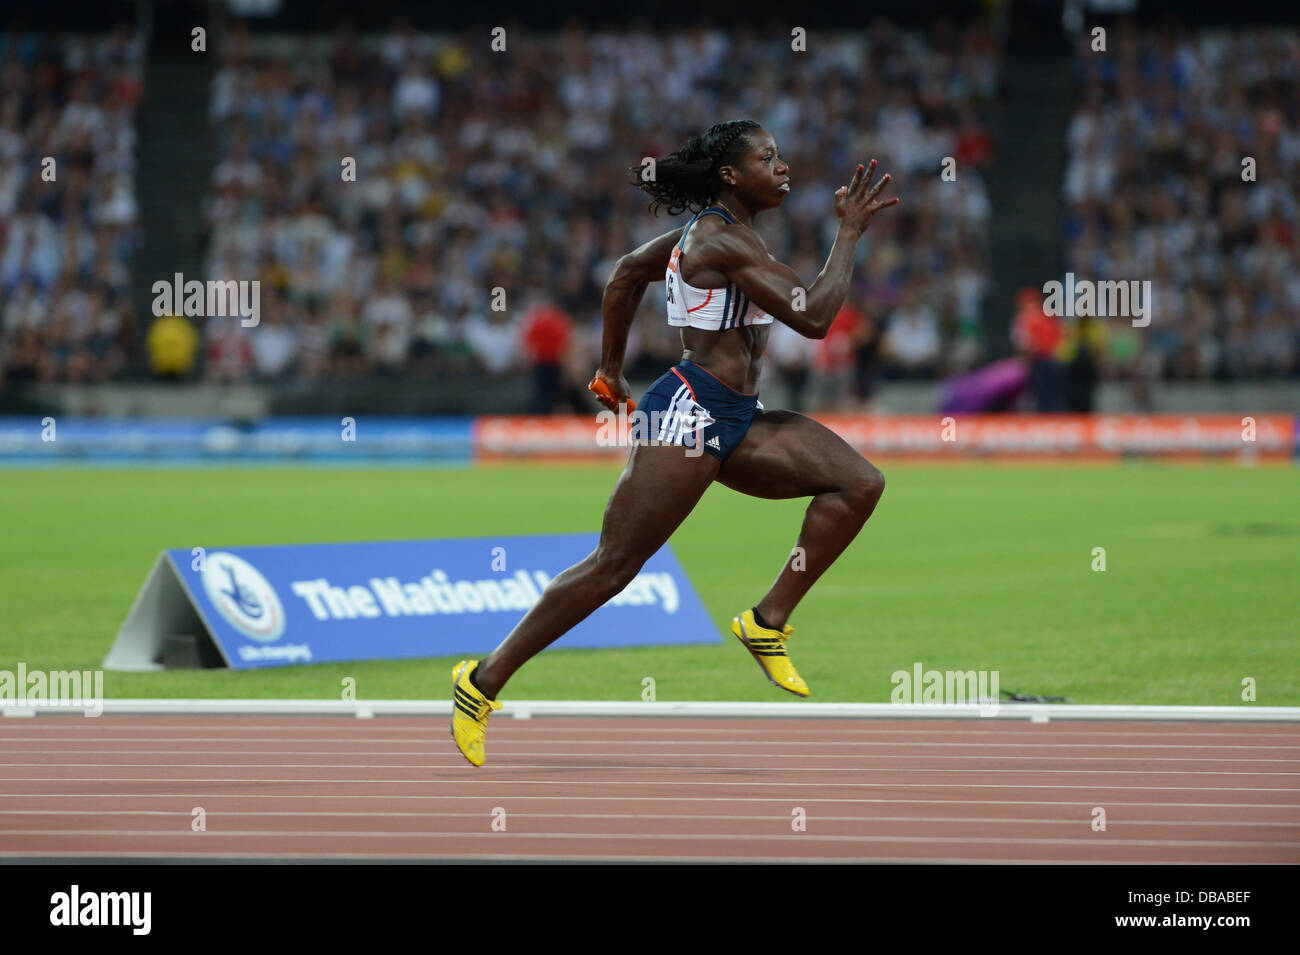 London, UK. 26th July, 2013. Anyika Onuora helps the GB women's 4 x 100m team to victory at the London Anniversary - Stock Image